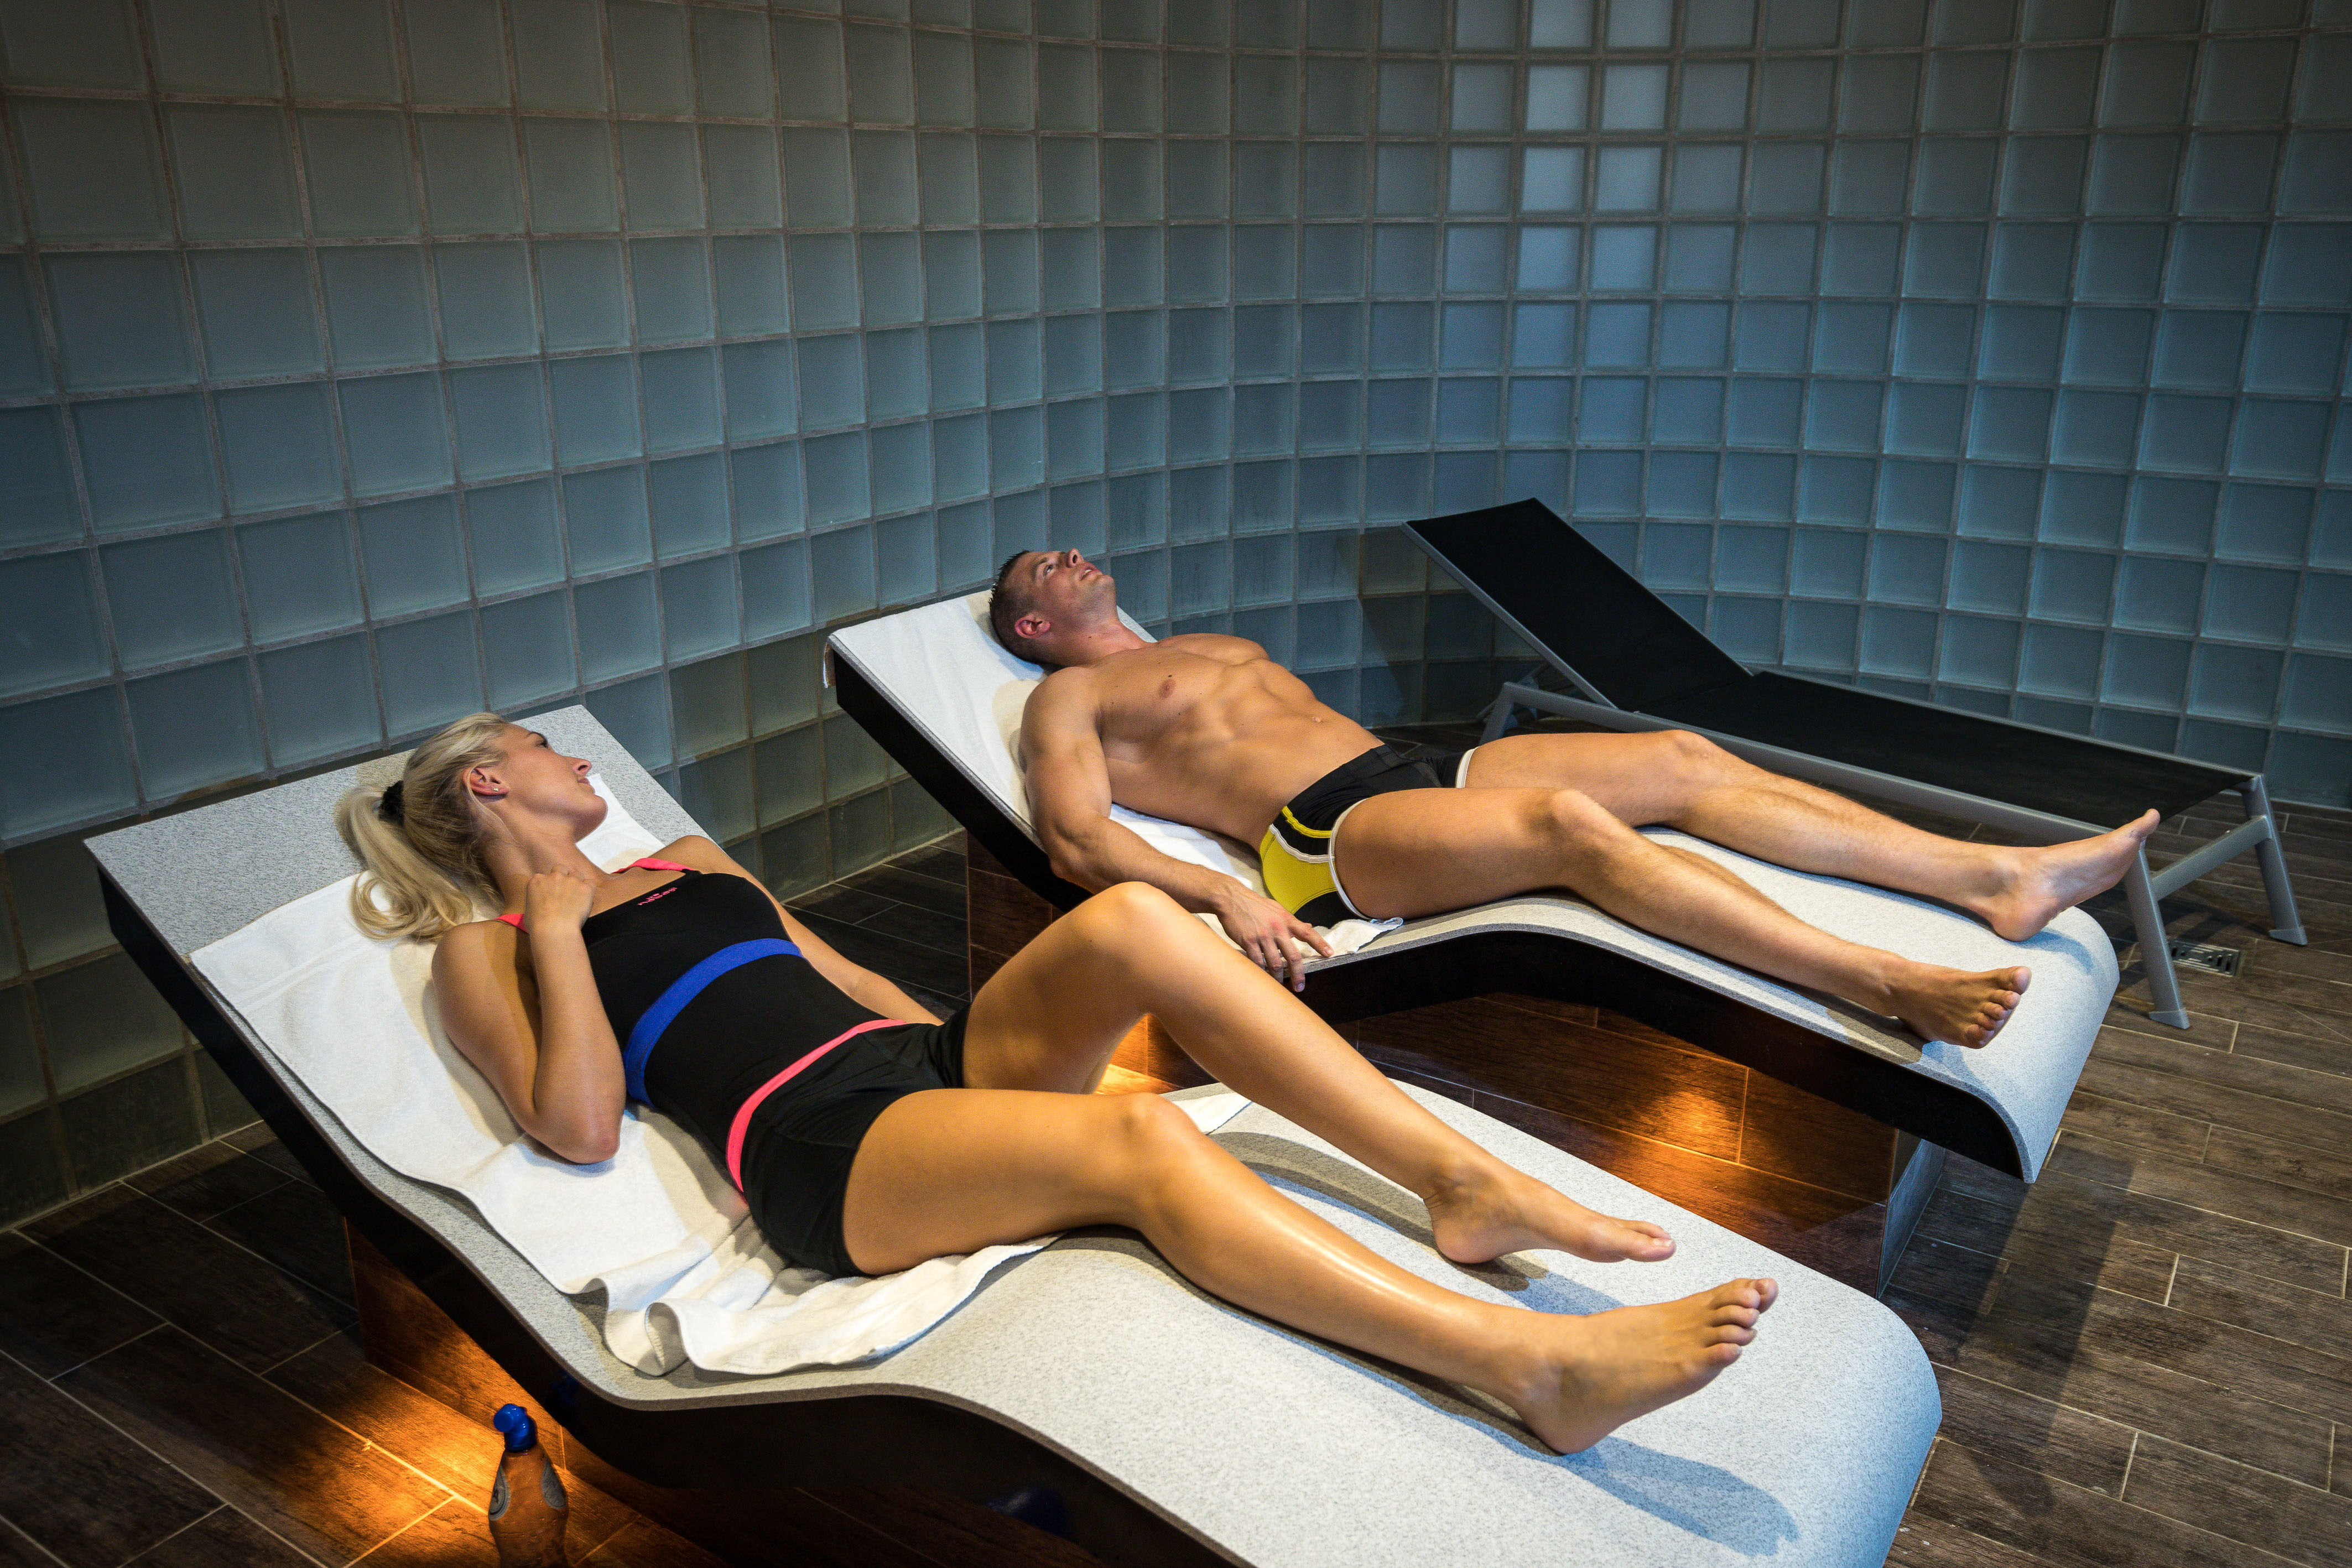 Two people using heated beds in the spa